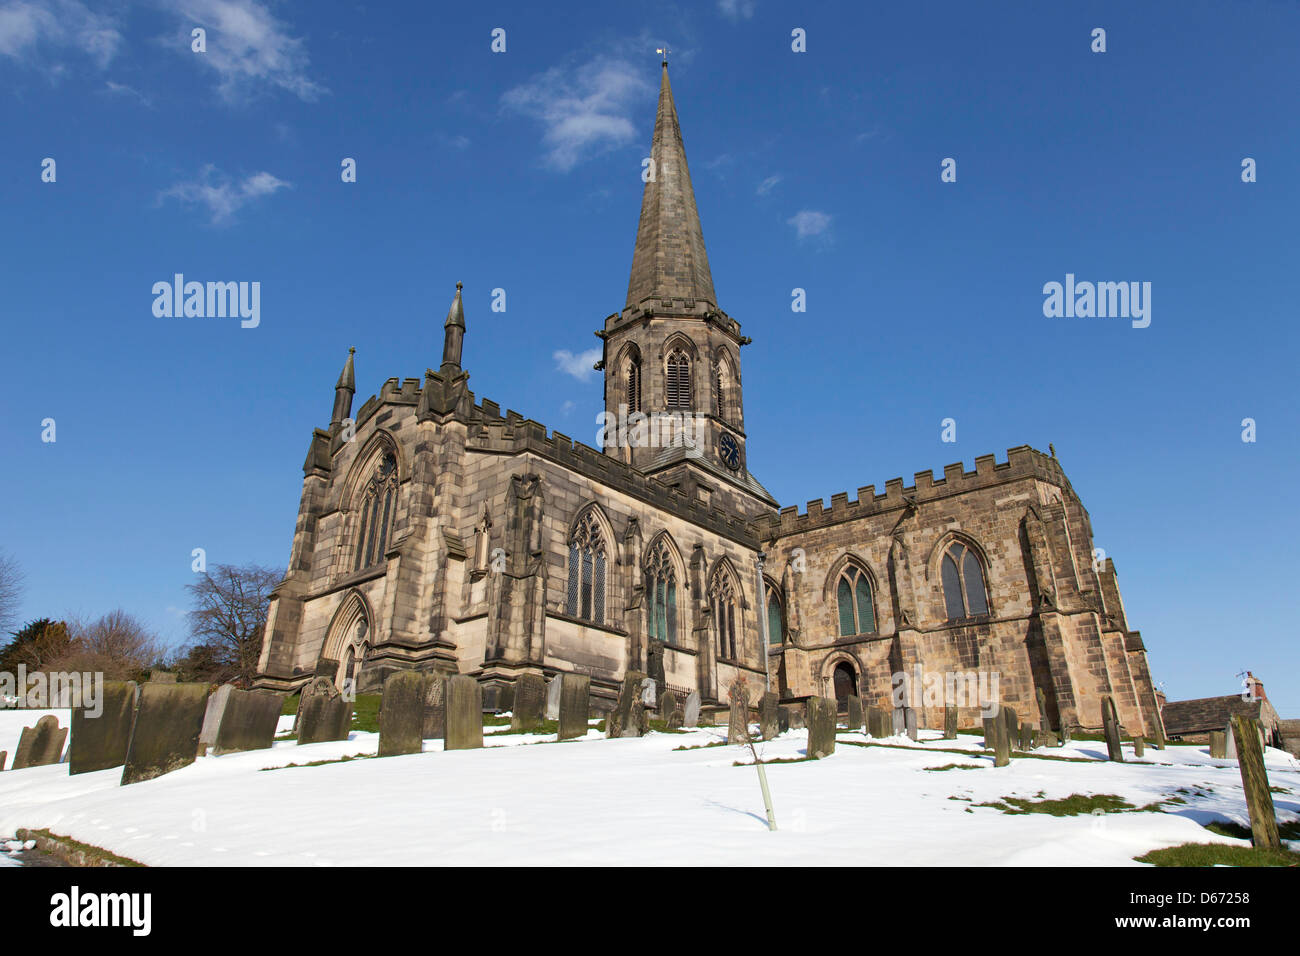 All Saints Church, Bakewell, Derbyshire, England, U.K. - Stock Image